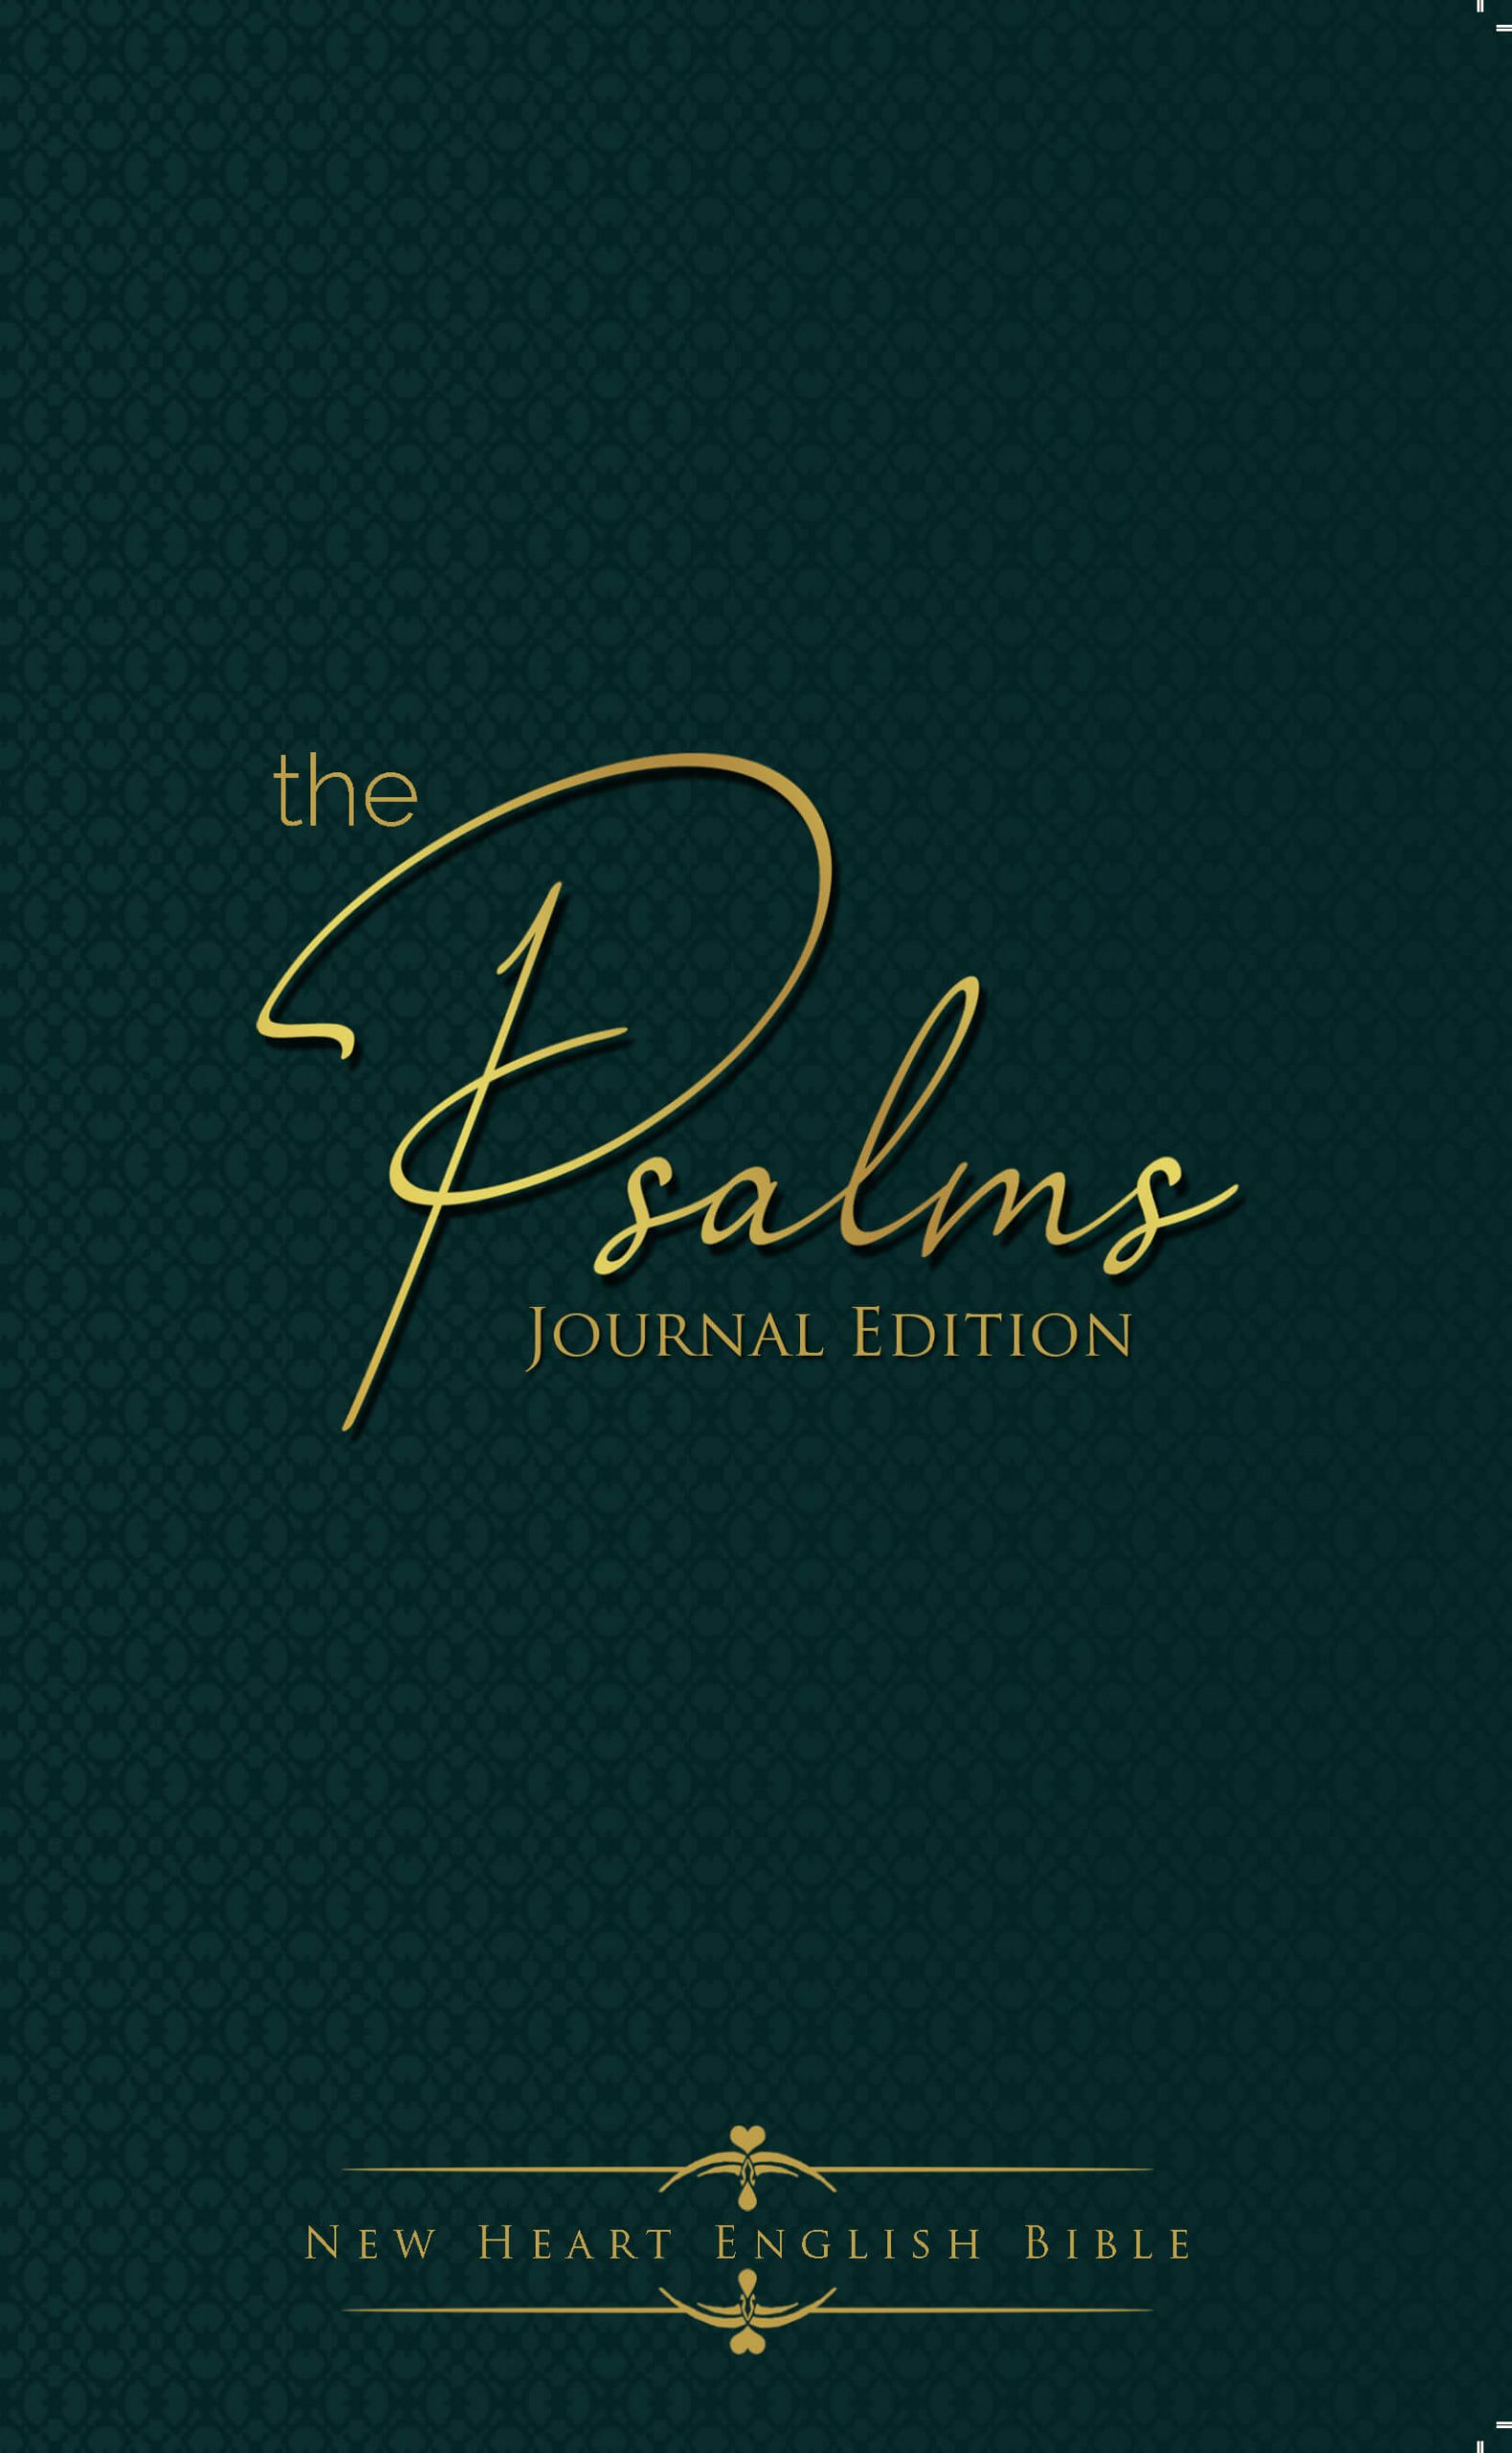 The cover of The Psalms Journal Edition (New Heart English Bible)